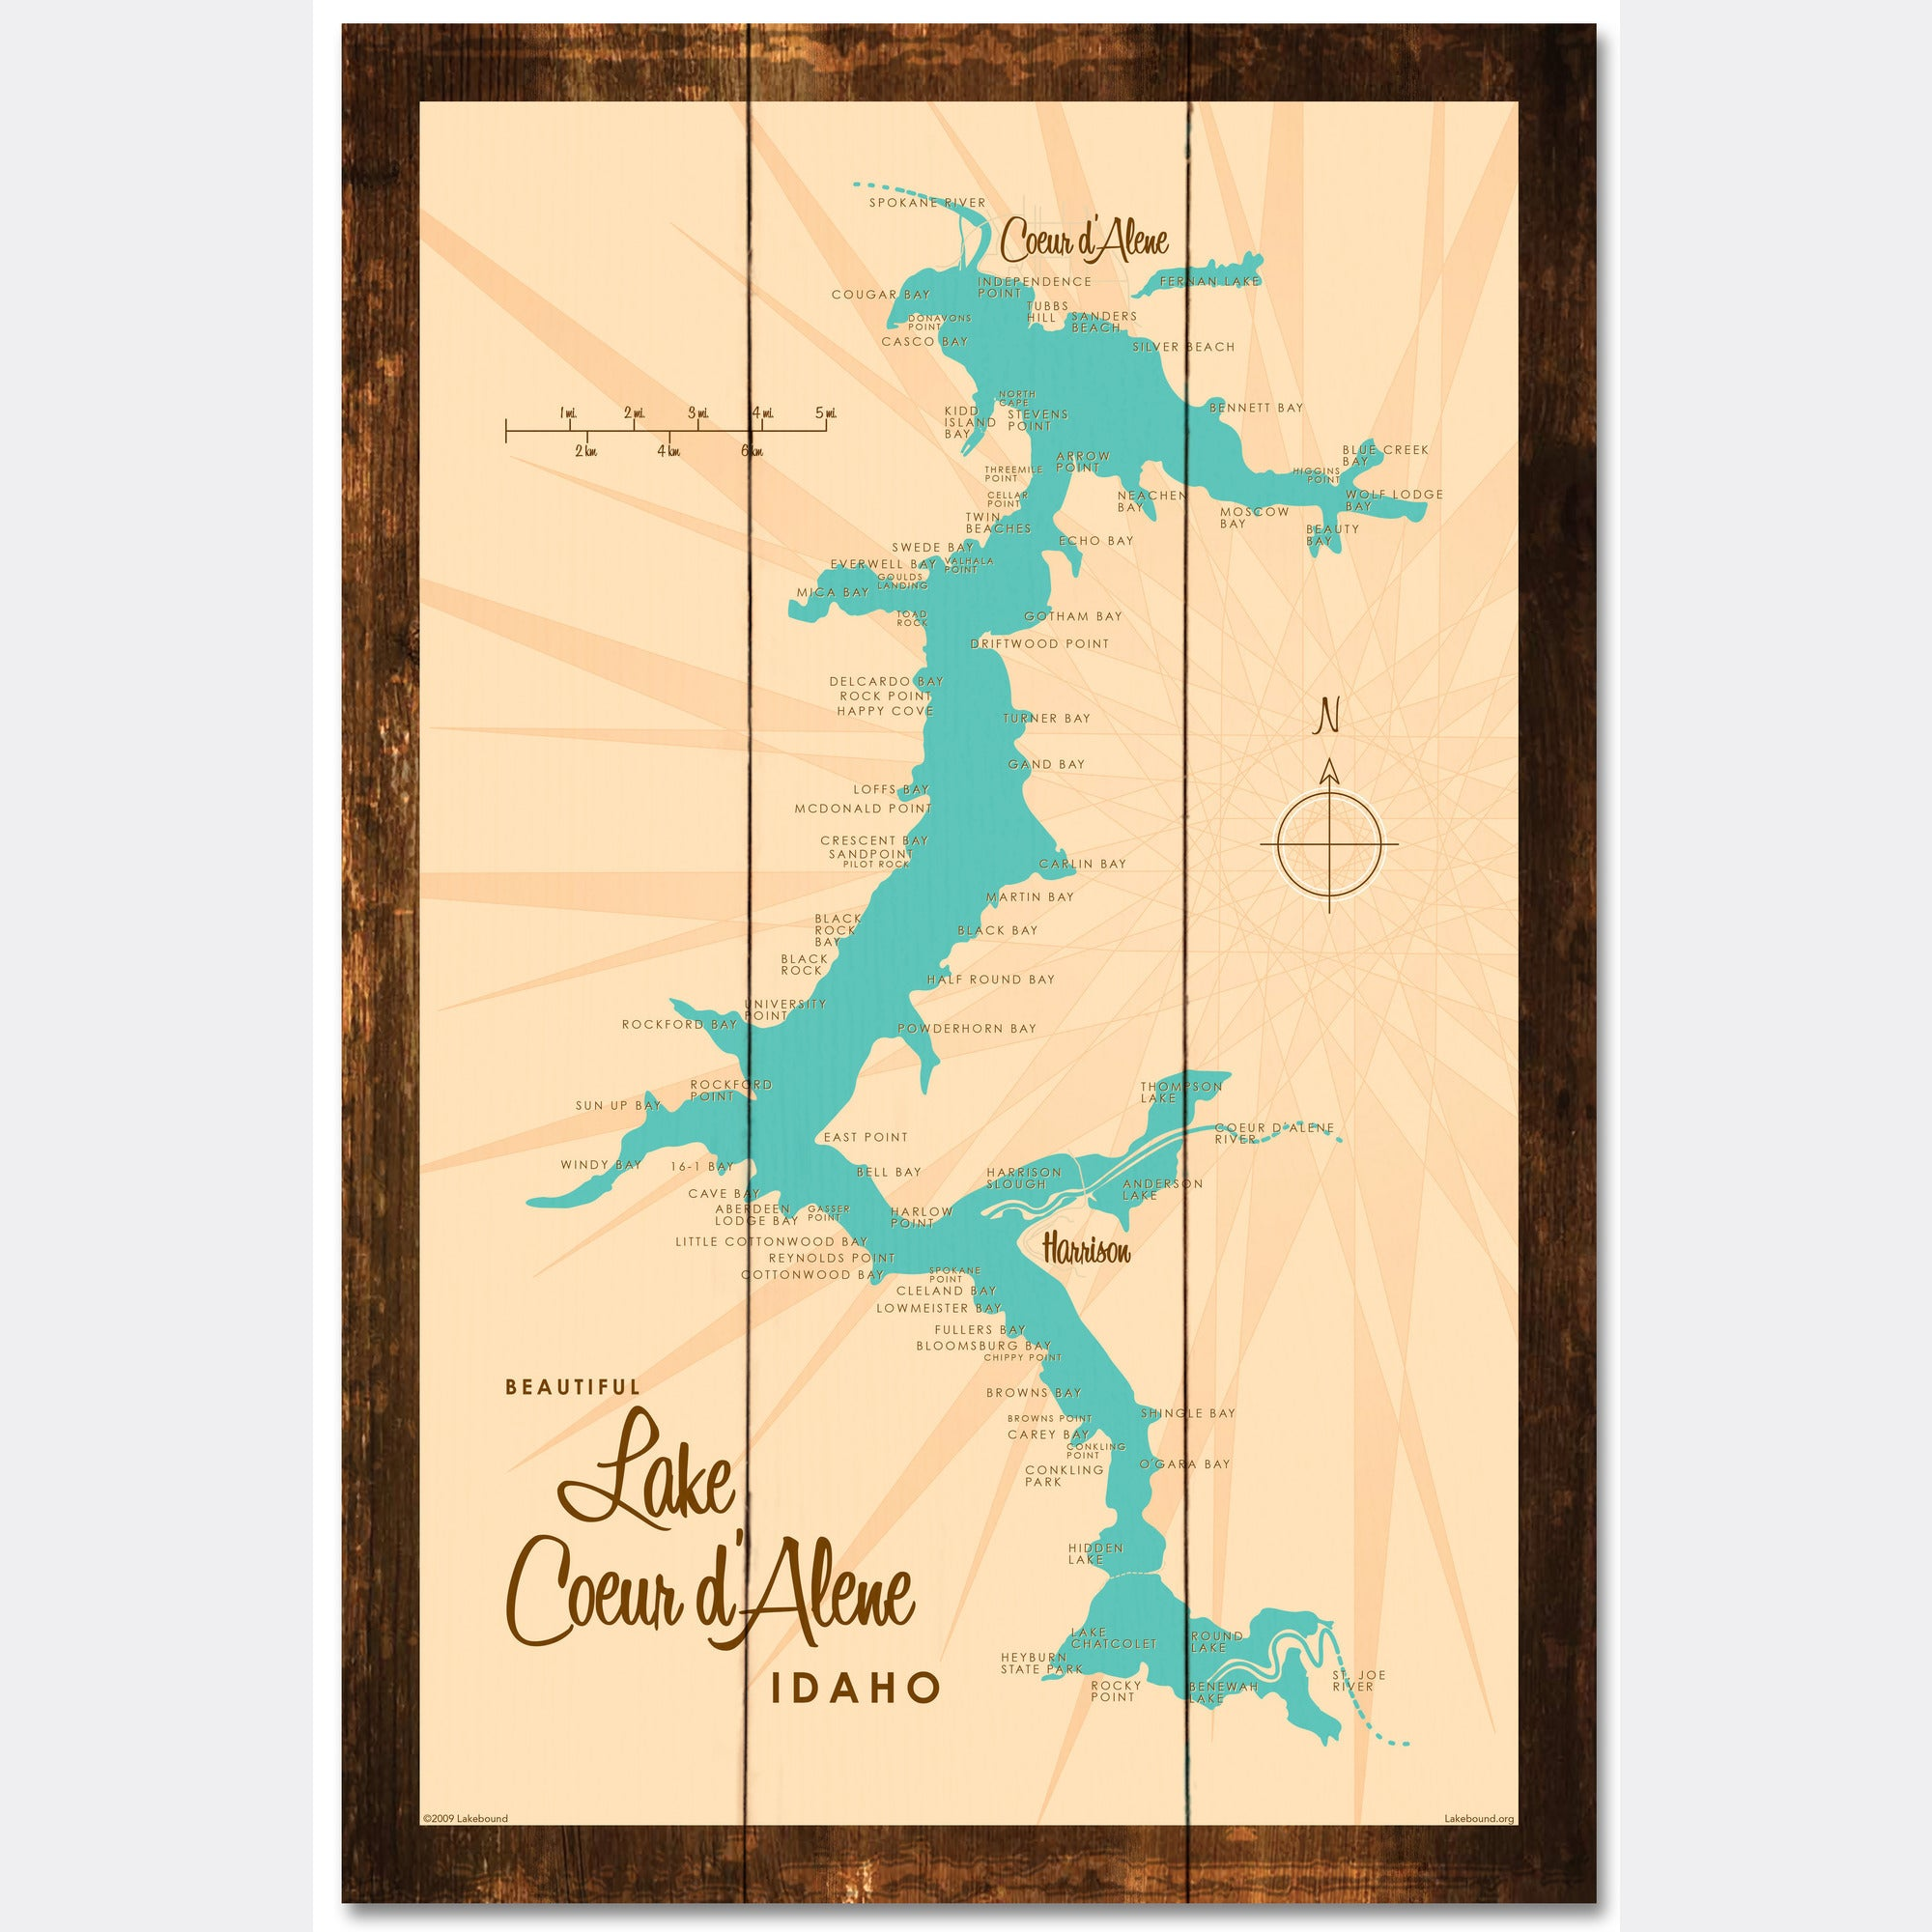 Coeur d'Alene Idaho, Rustic Wood Sign Map Art